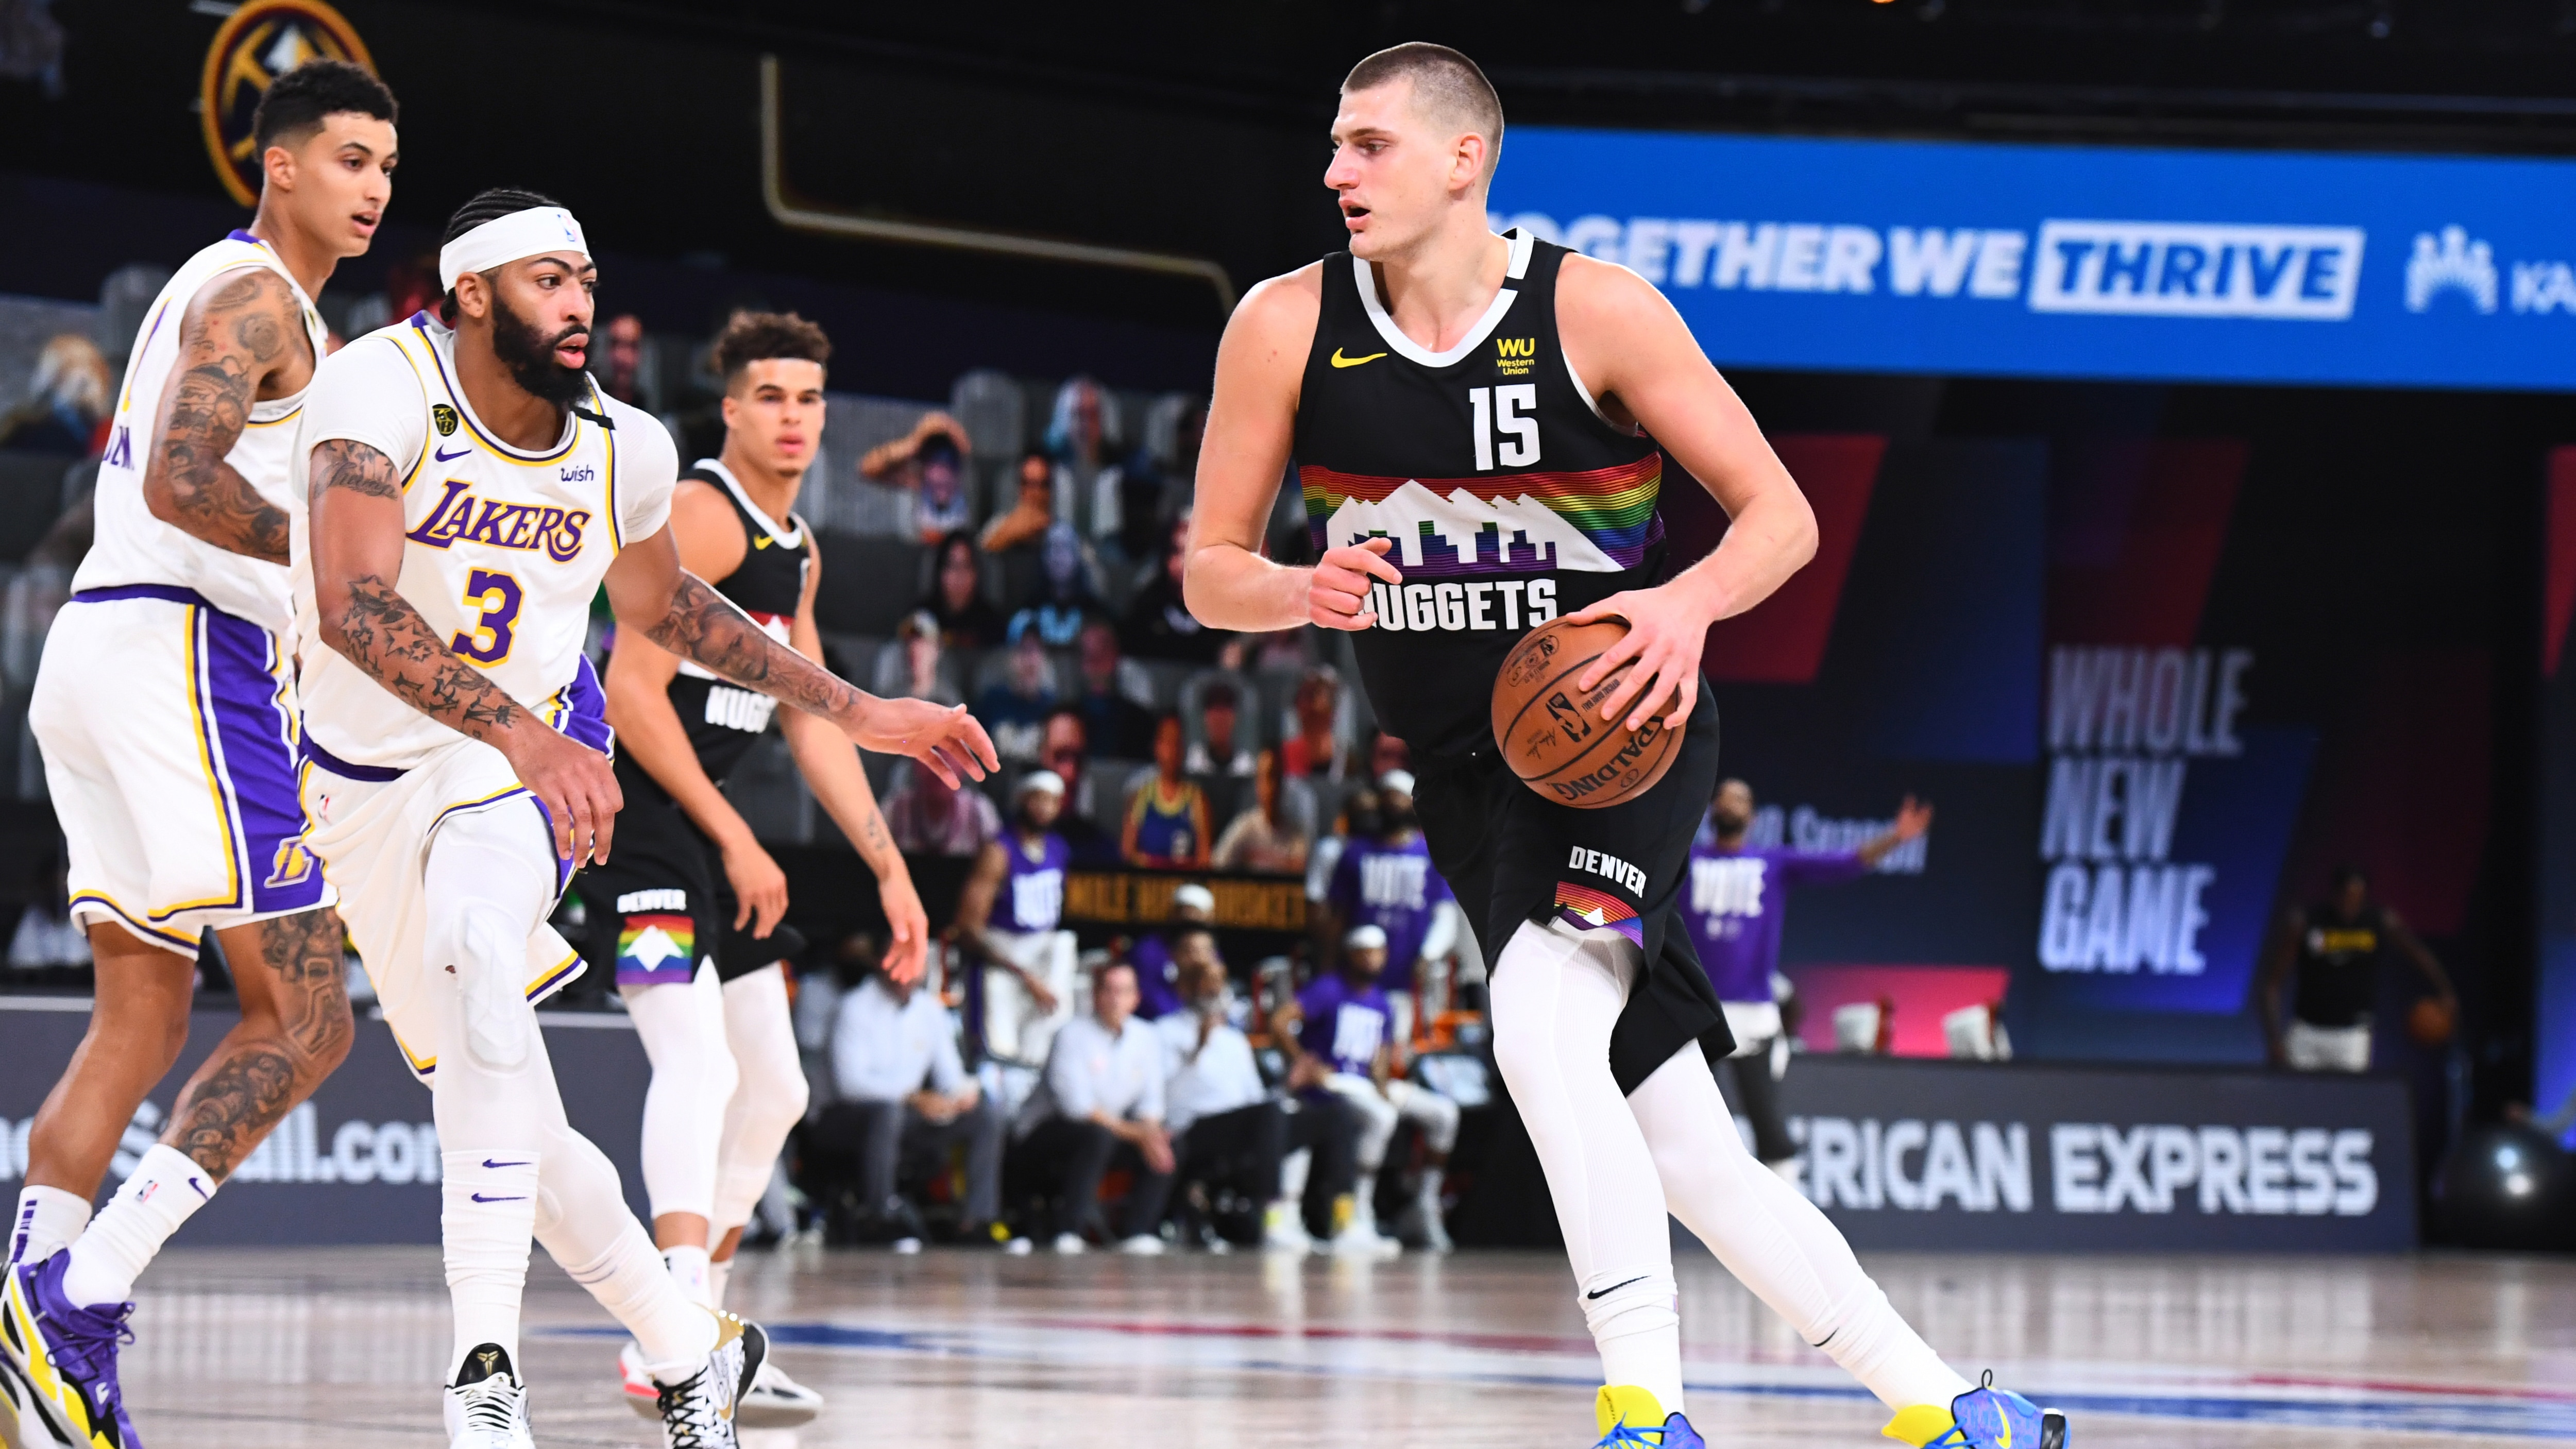 Jokic discusses the Nuggets' resiliency ahead of game 4